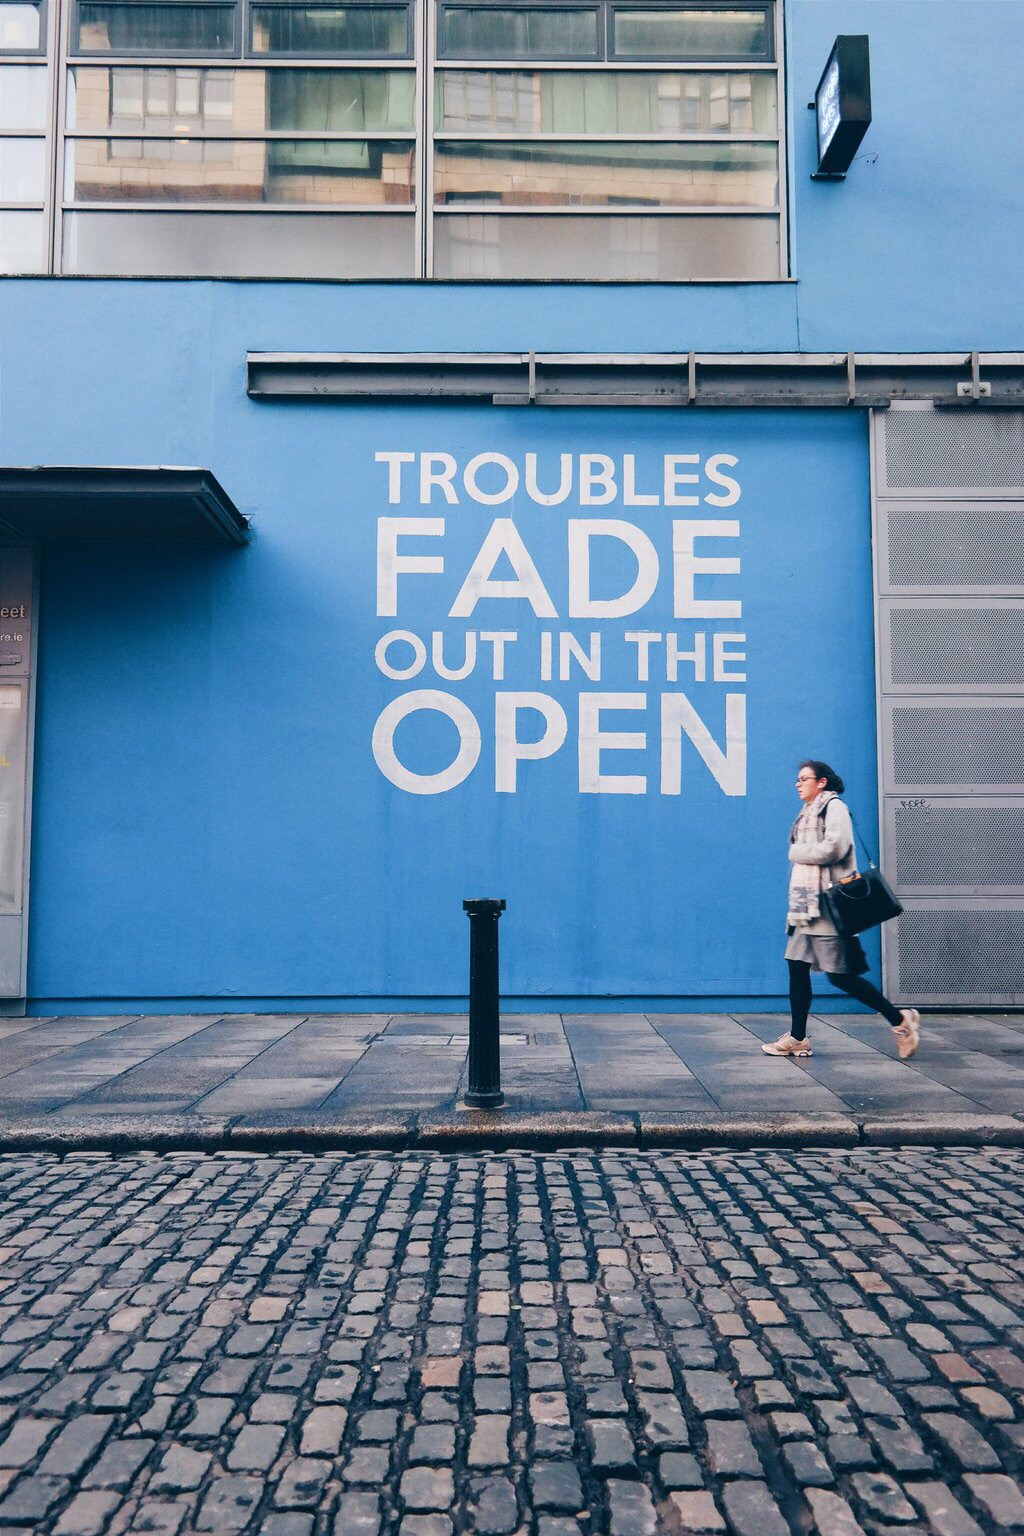 TROUBLES FADE OUT IN THE OPEN